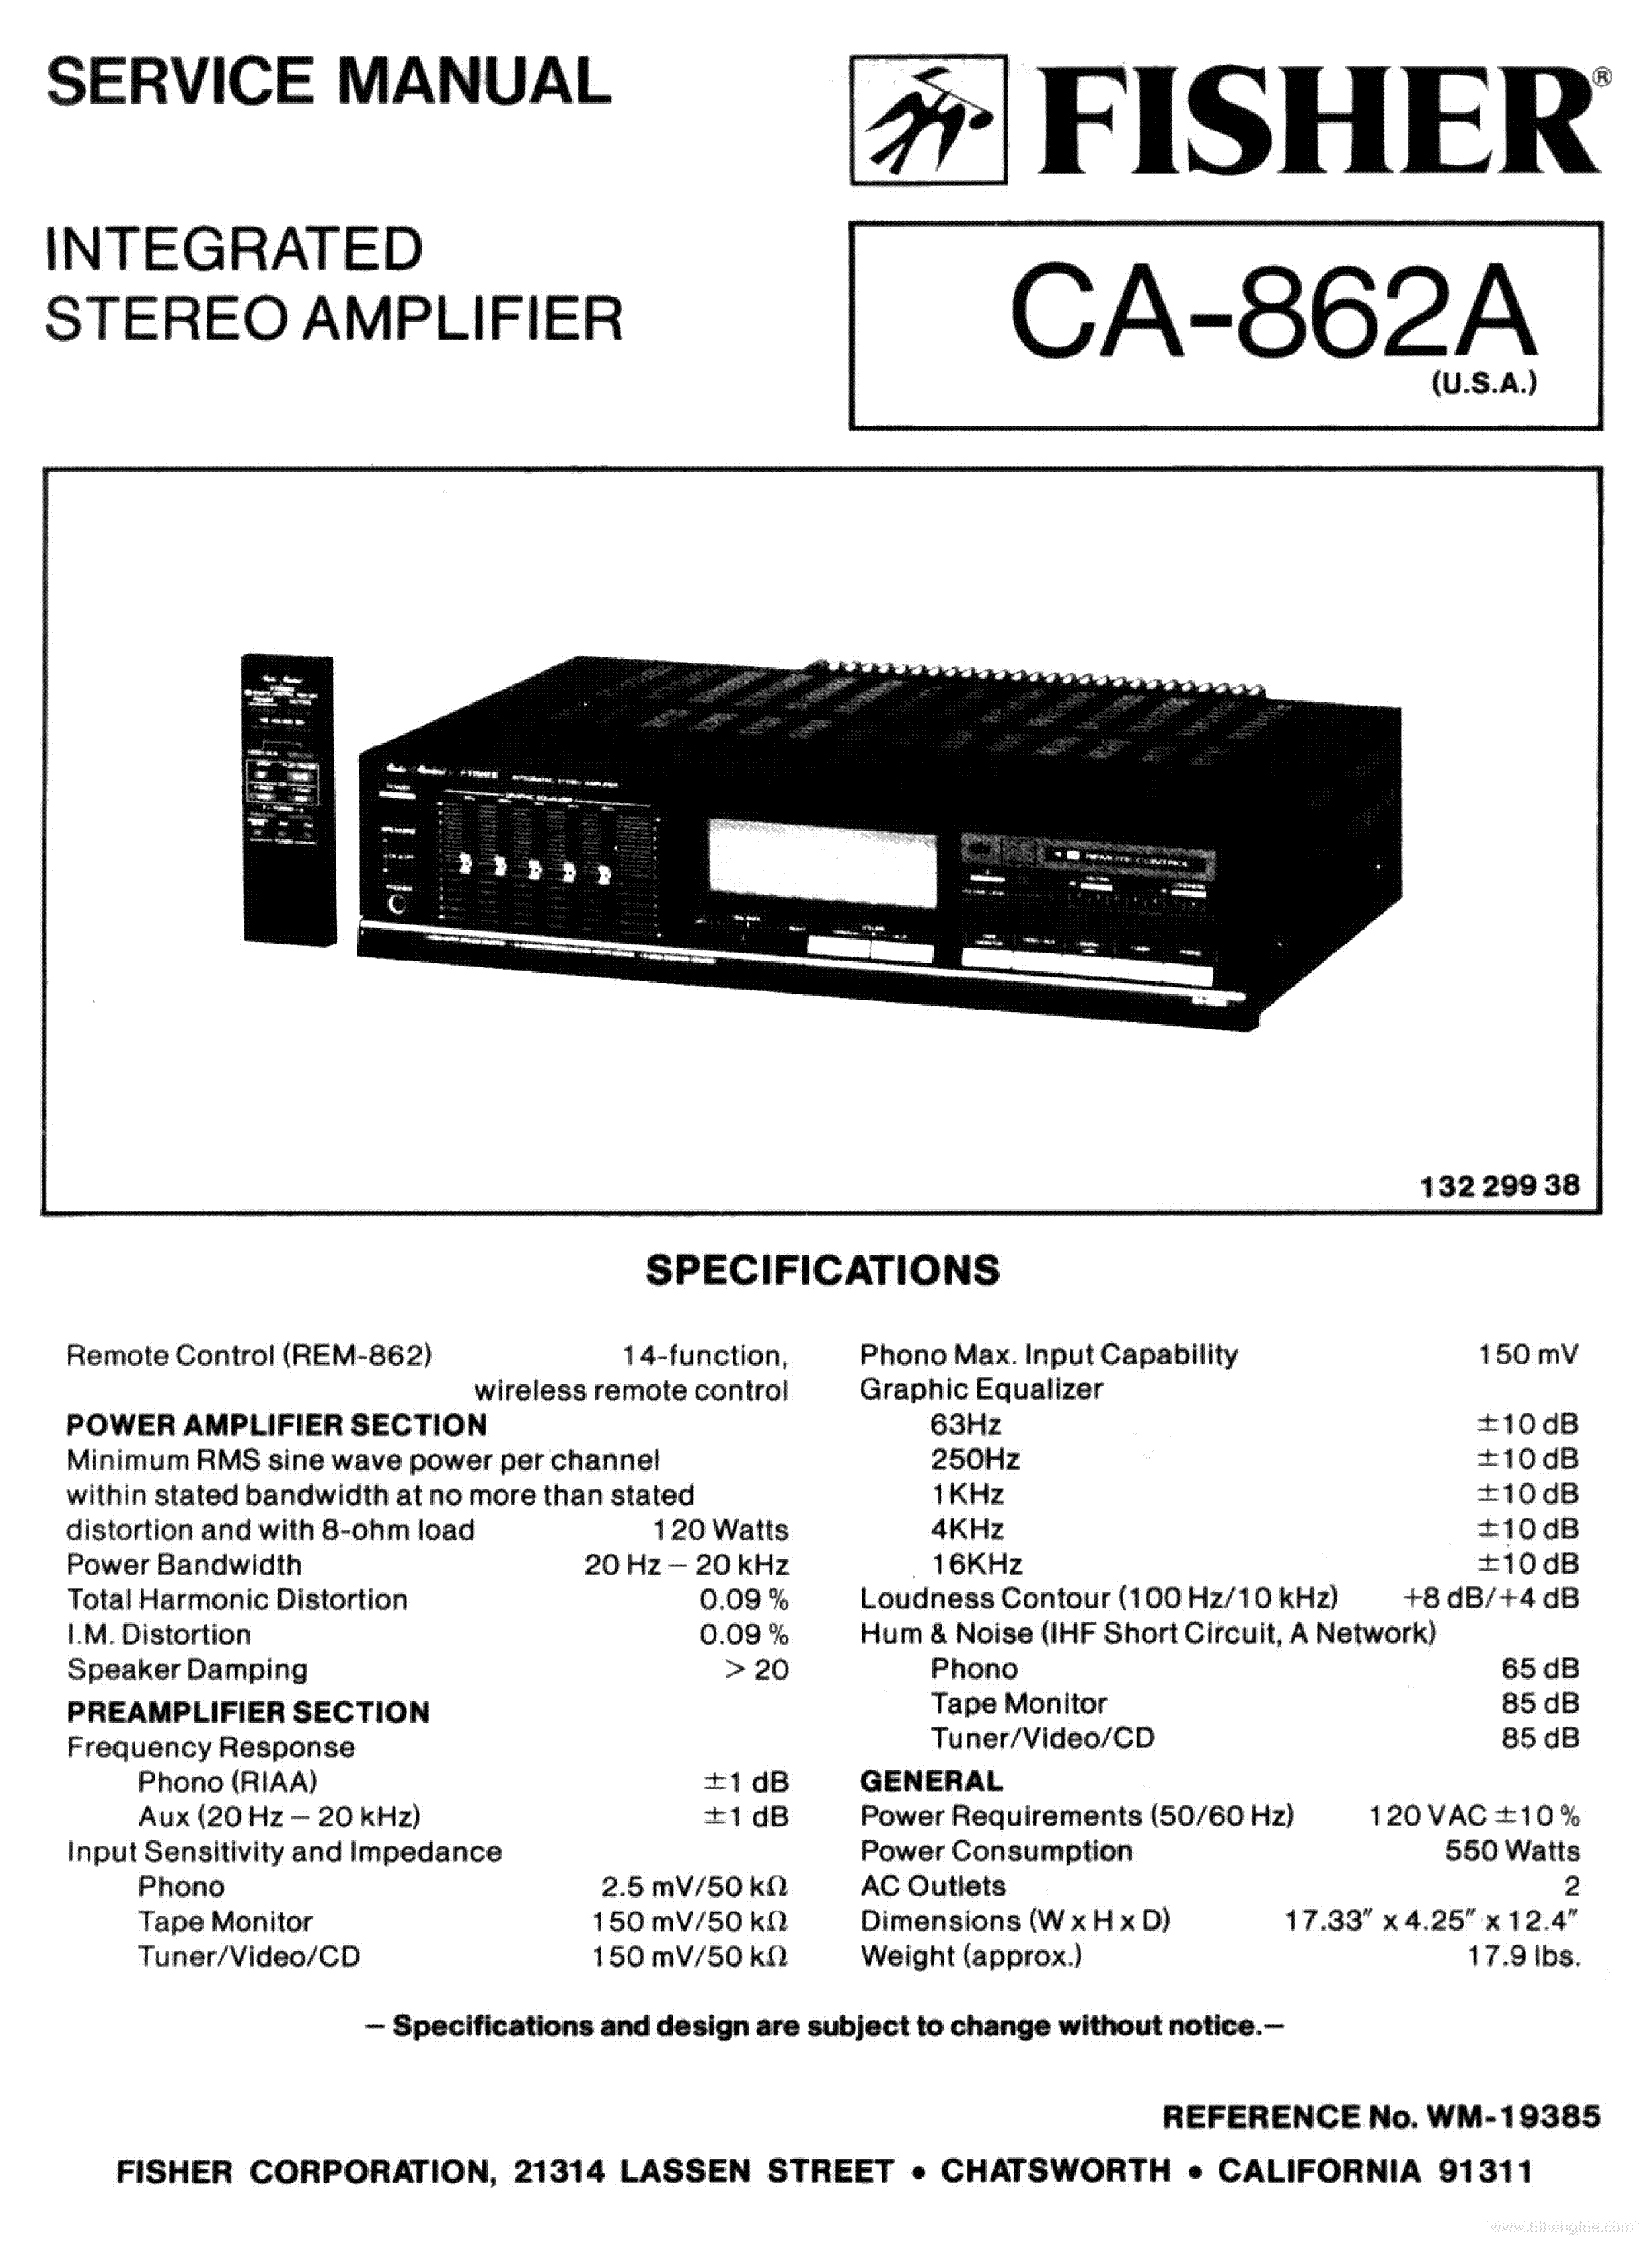 FISHER CA-862A AMPLIFIER service manual (1st page)